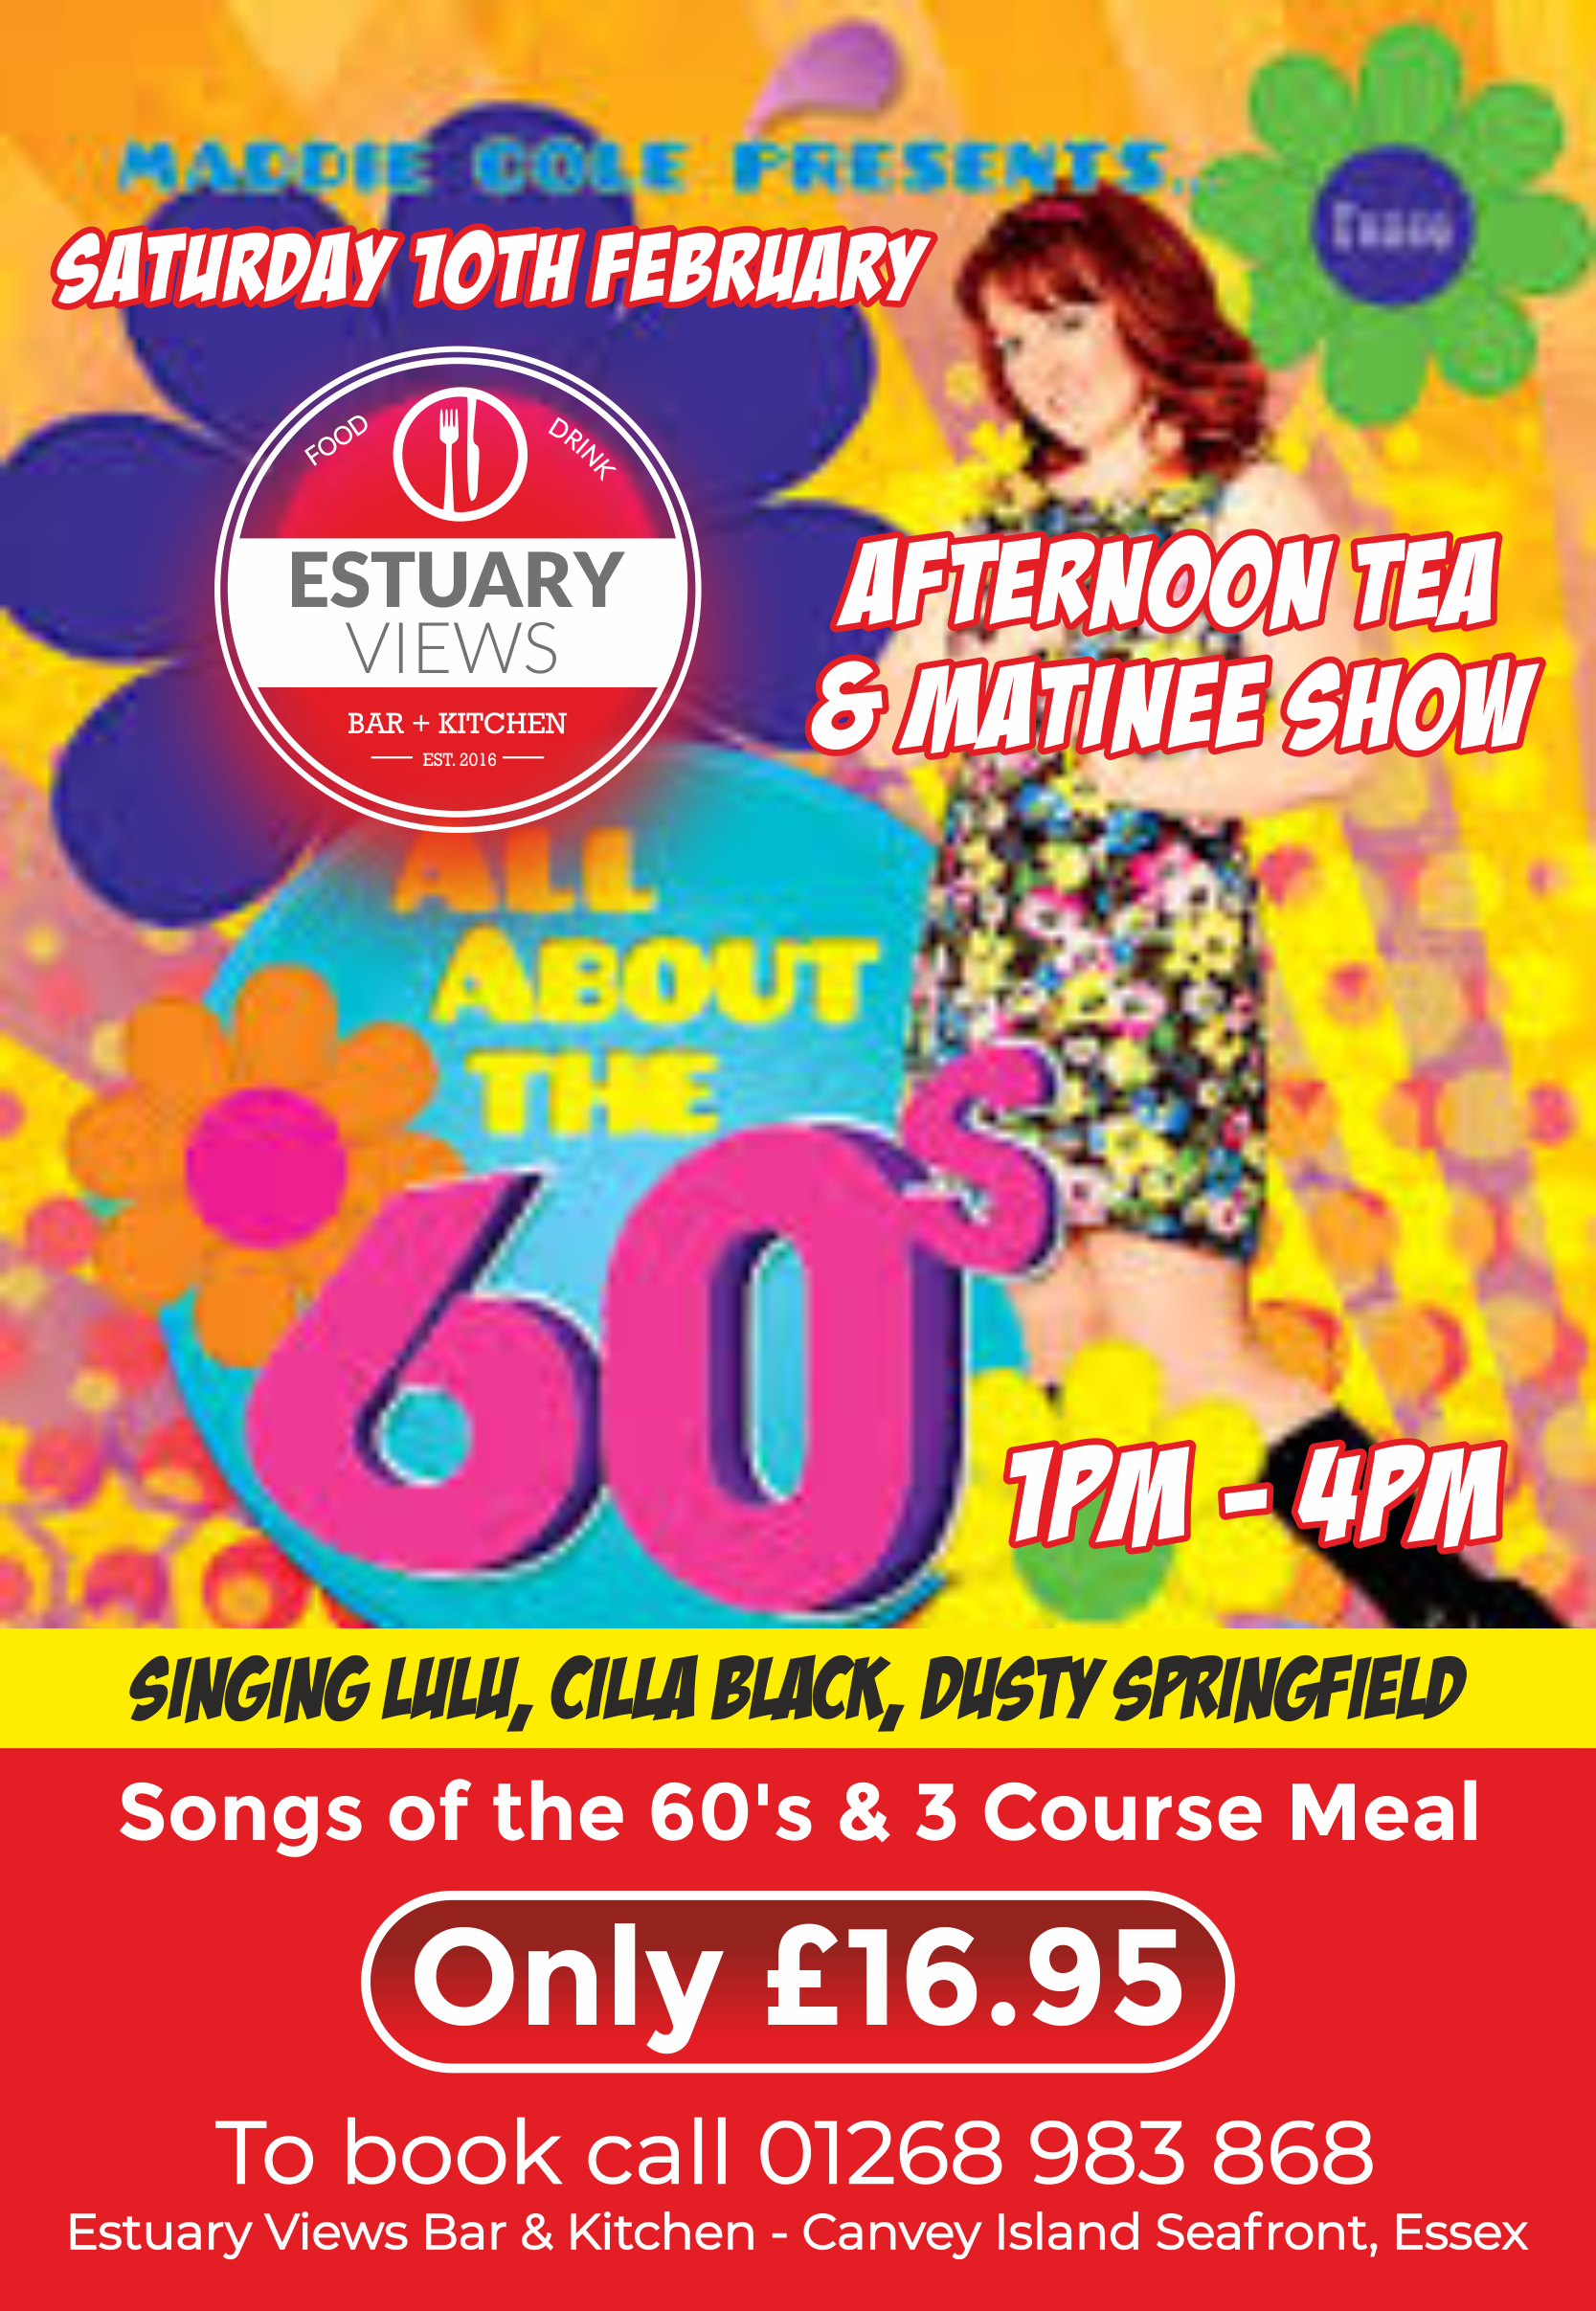 Sounds of the 60's Matinee Show with Afternoon Tea